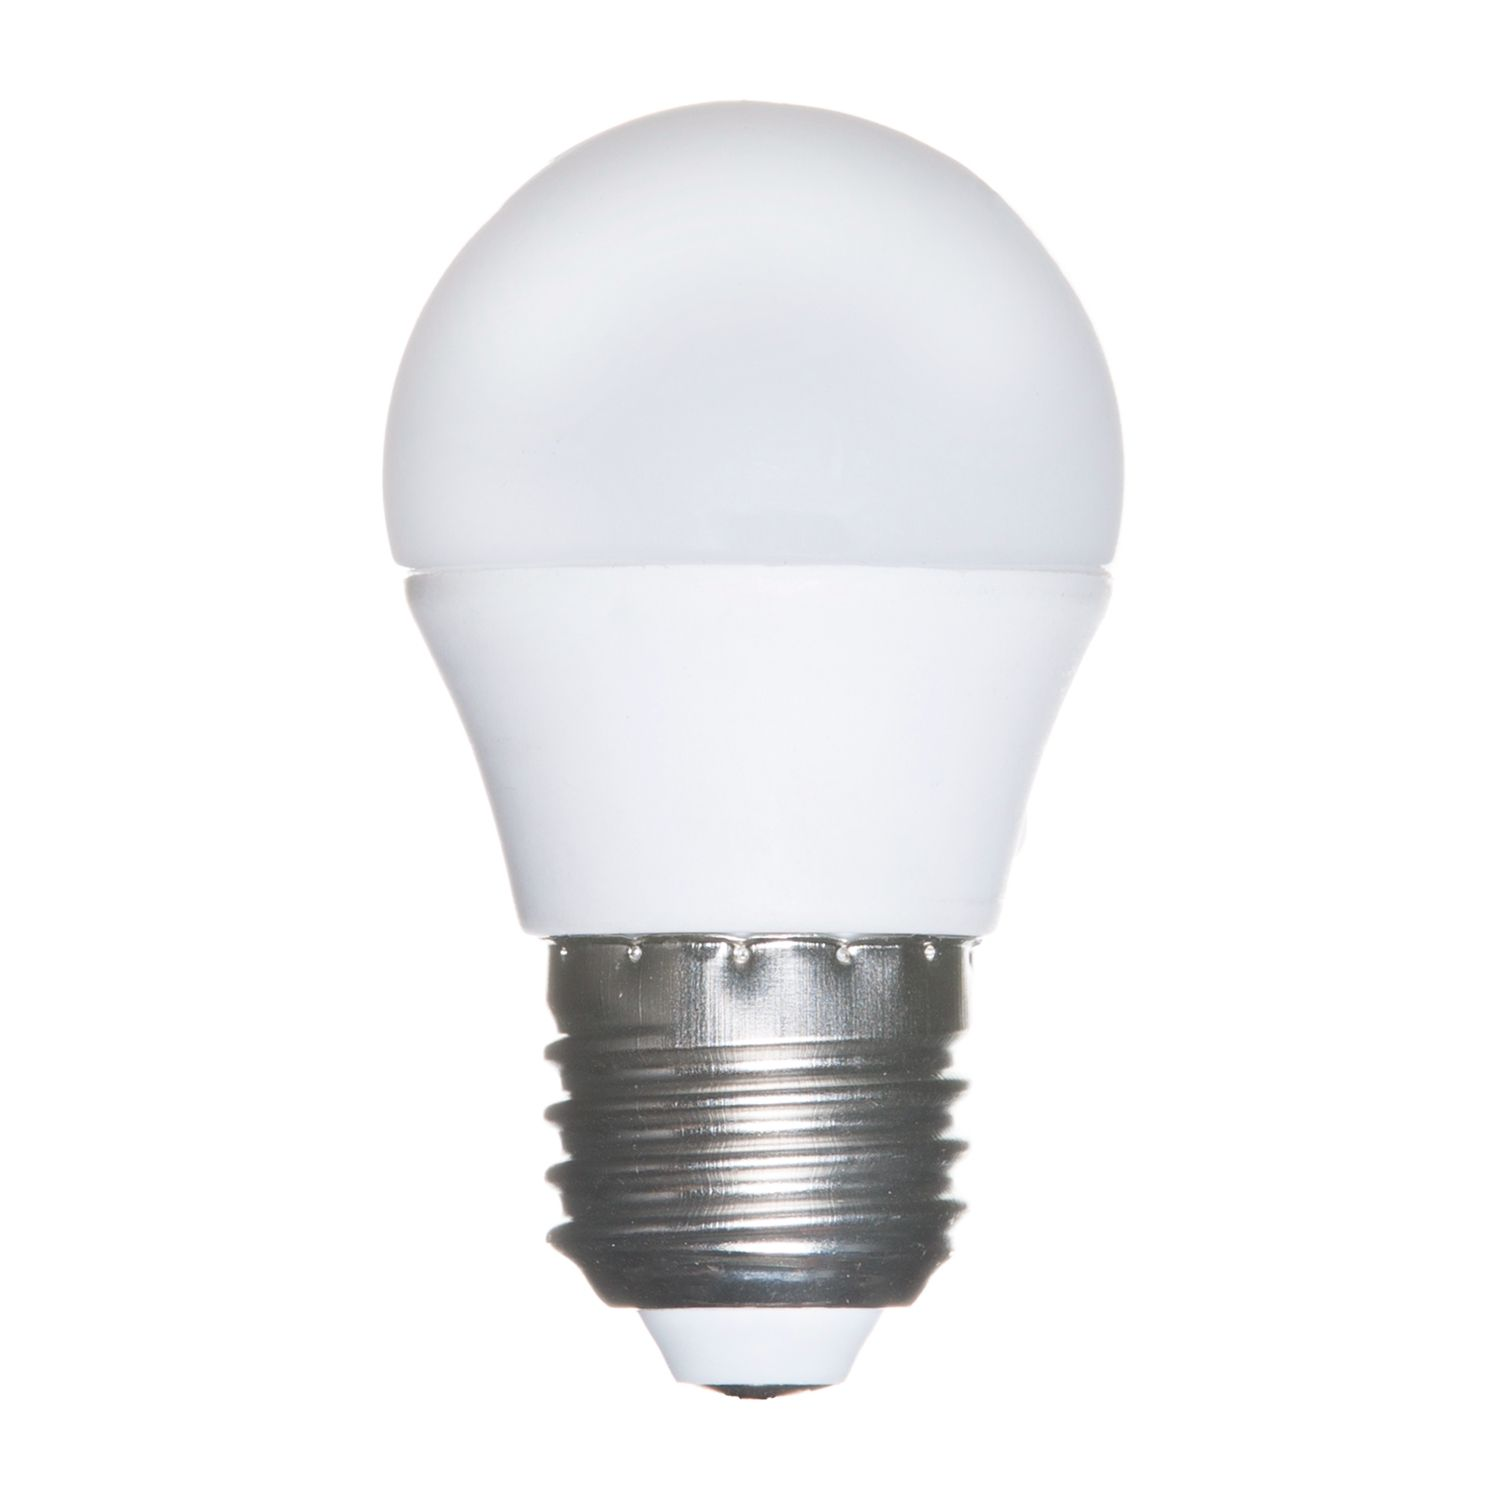 hot sell product! low price China factory 3W 5w 7w 9w 12w 15w 18w LED bulb lights